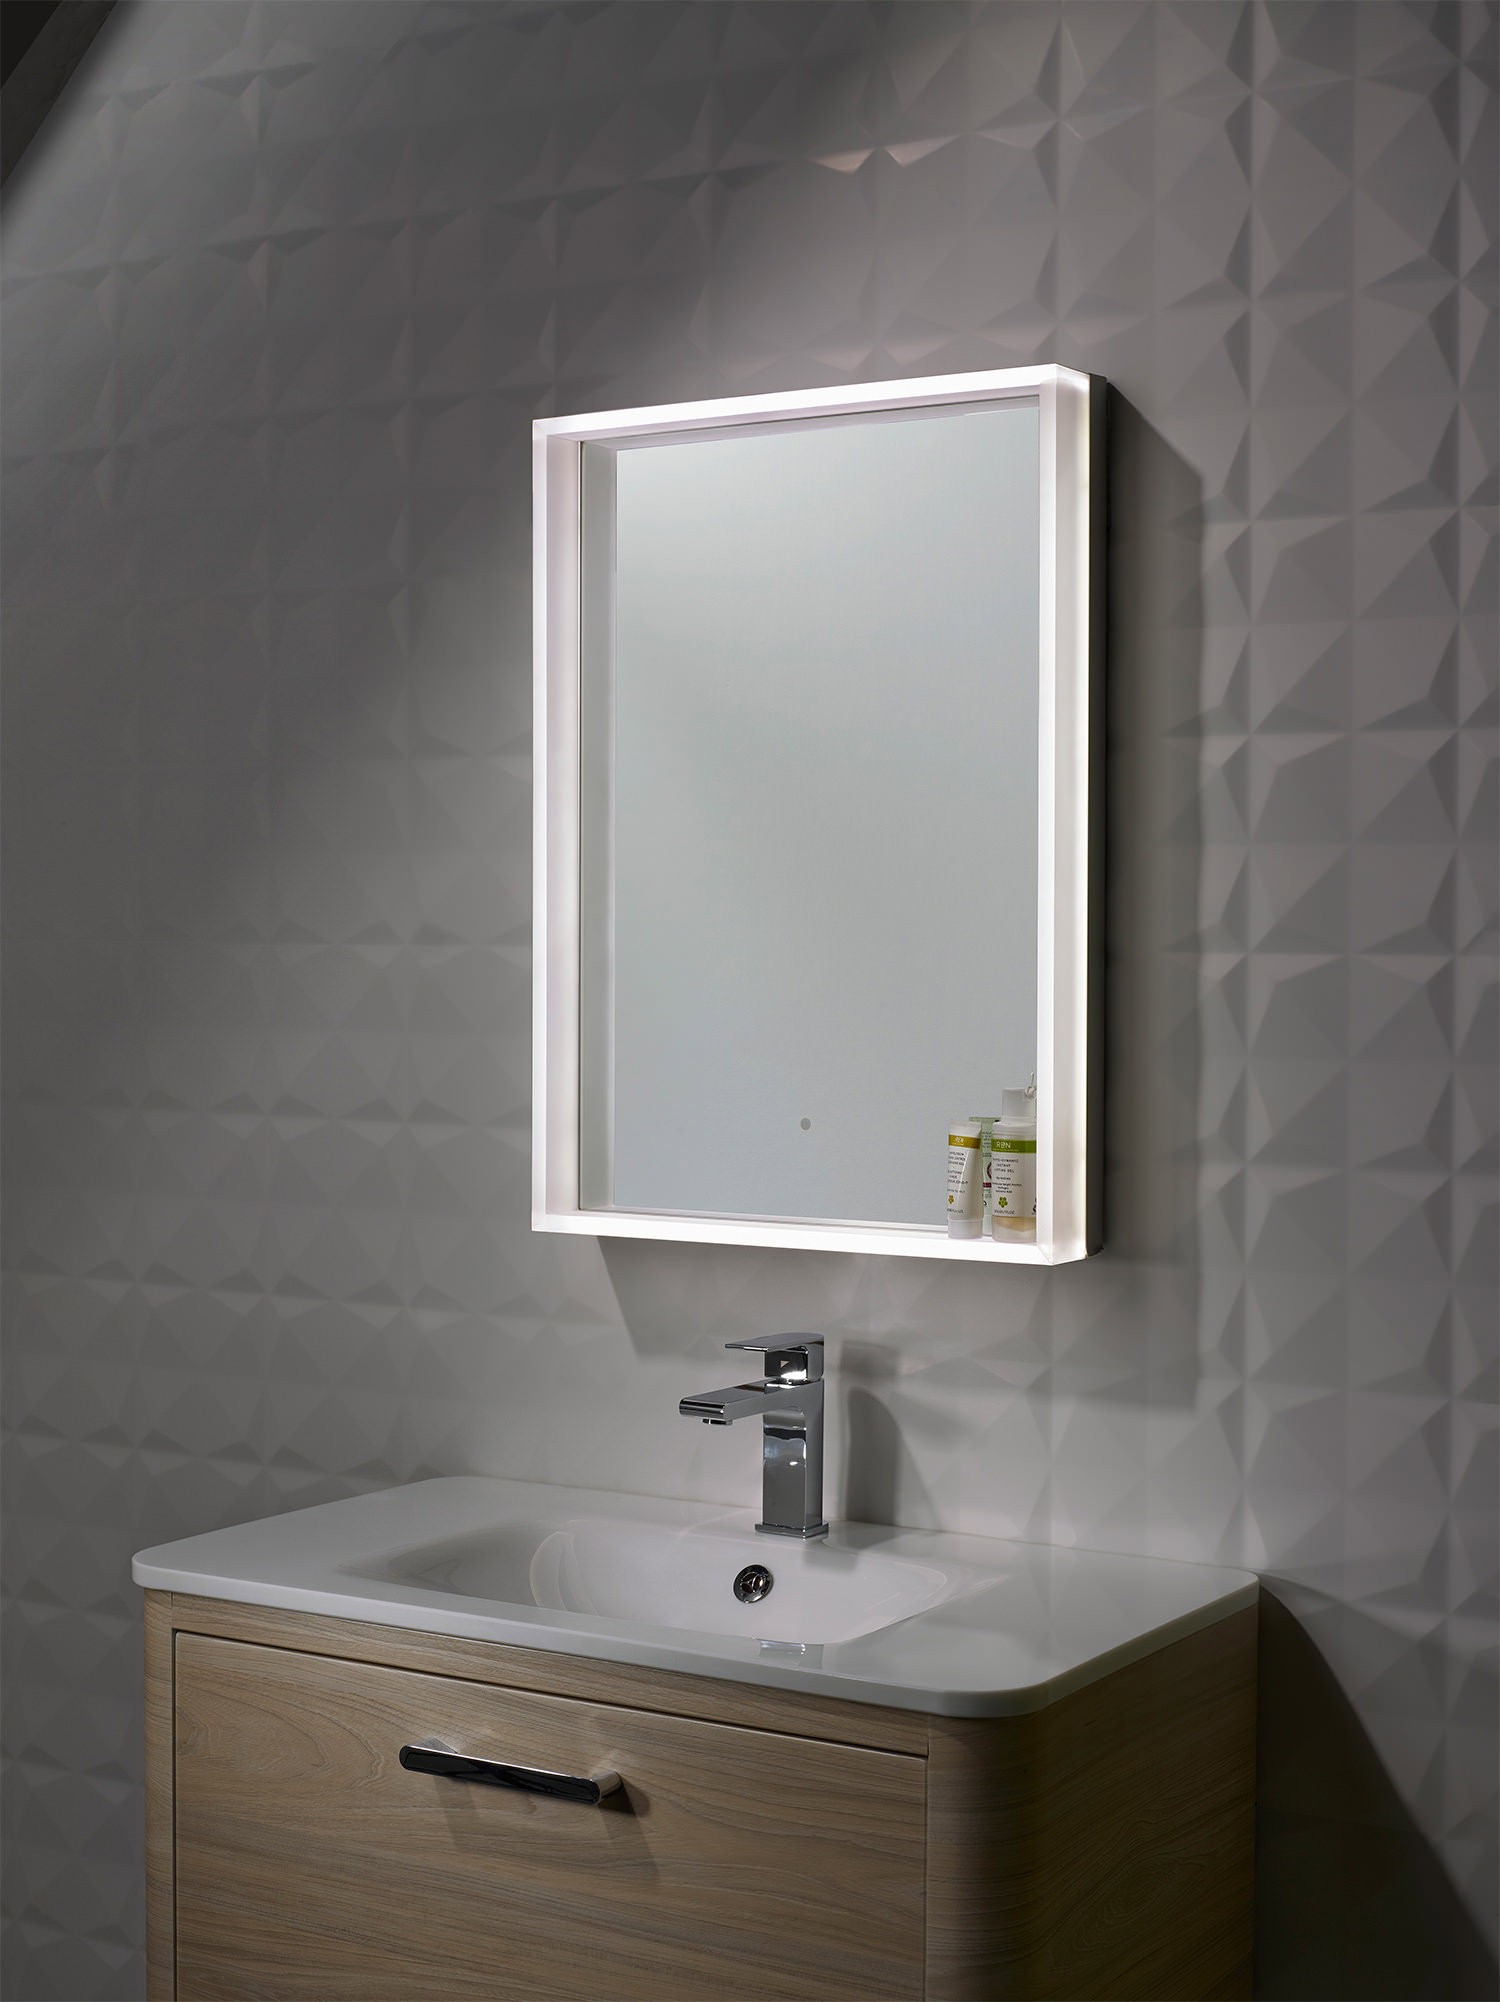 roper rhodes bathroom mirrors roper aura illuminated framed mirror 500 x 700mm 20226